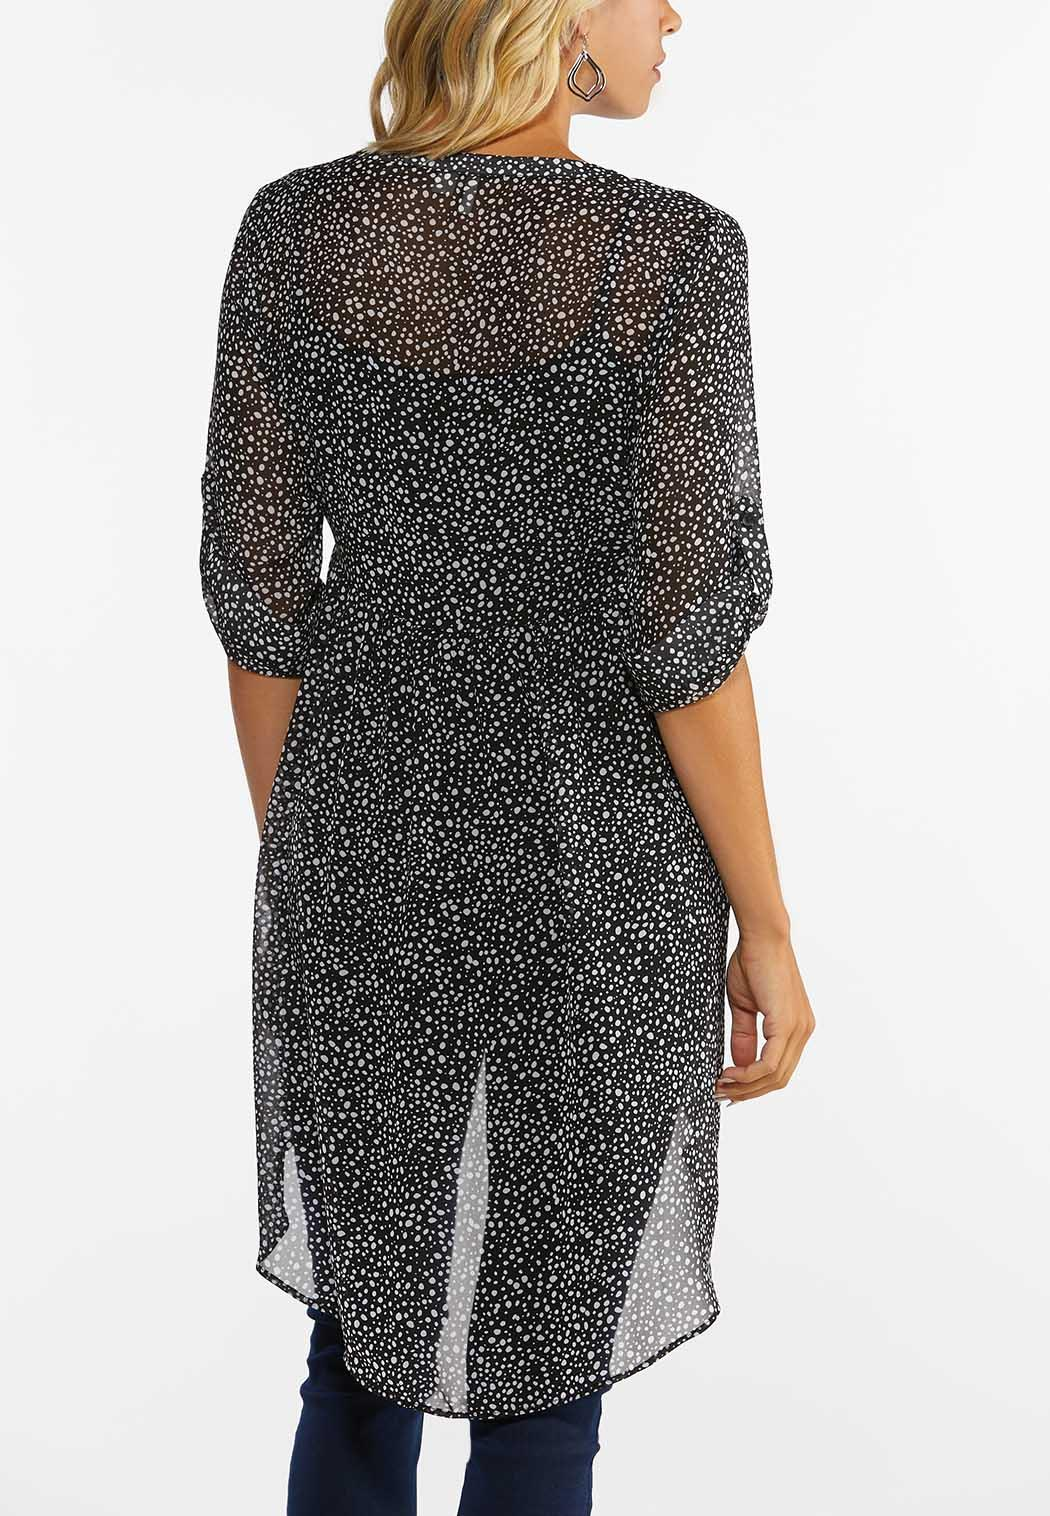 Breezy Dotted Tunic (Item #44474991)